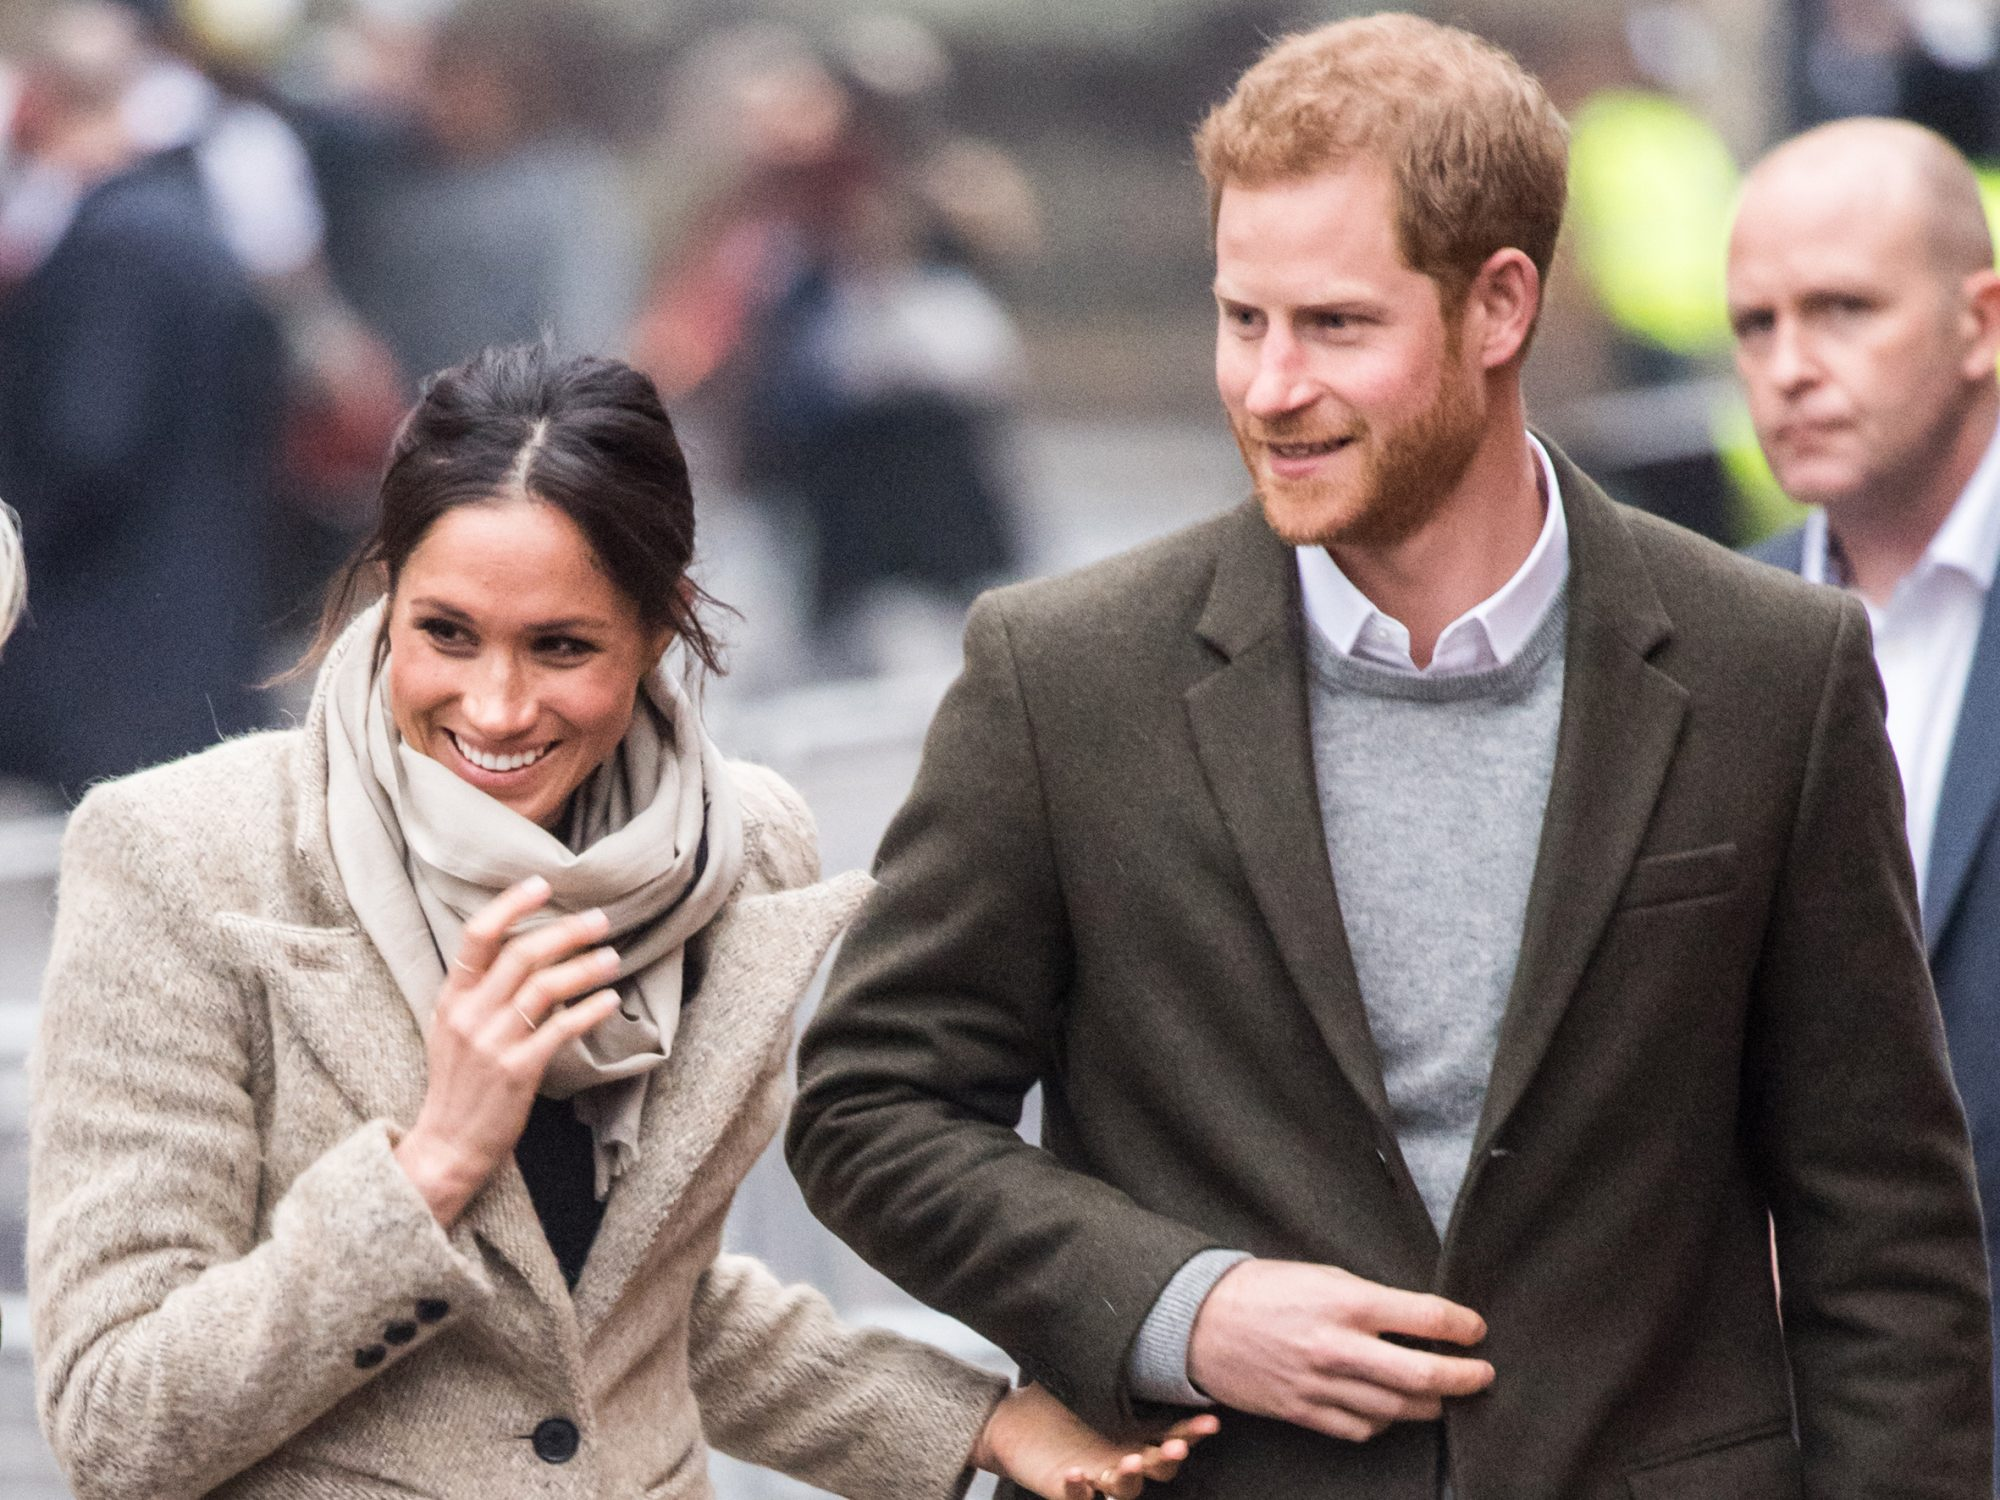 Prince Harry and Meghan Markle Have Big Travel Plans for Their First Valentine's Day as an Engaged Couple